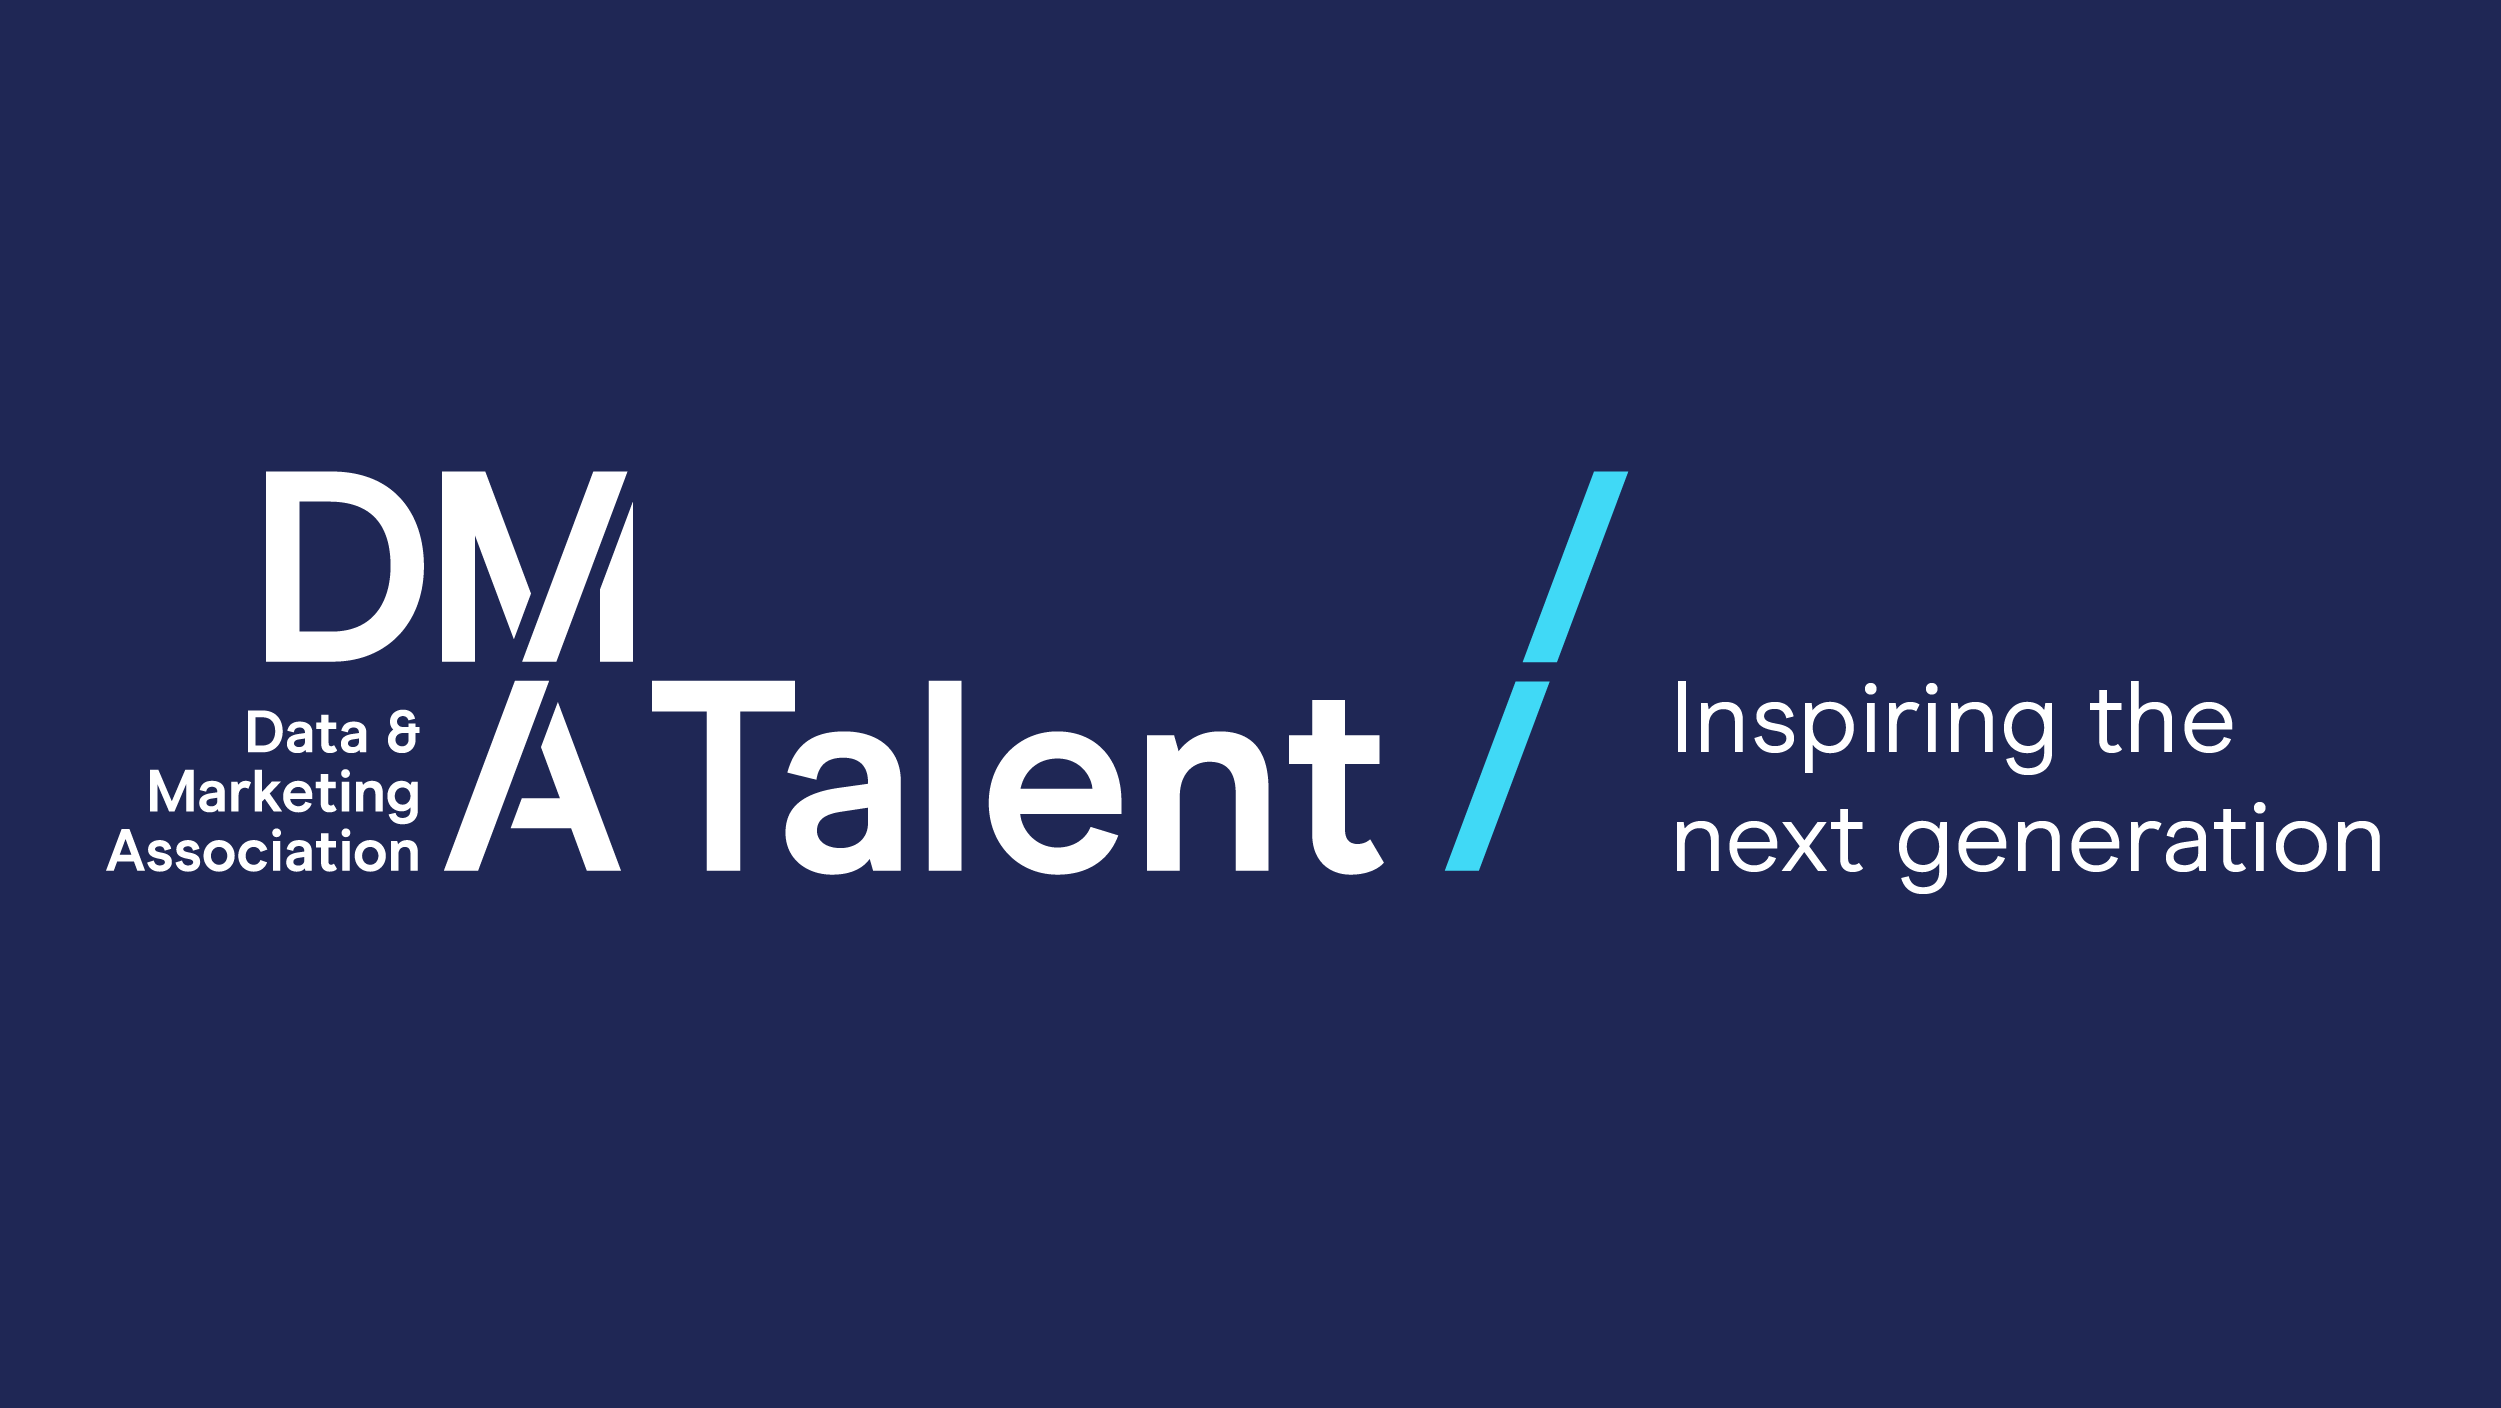 DMA-Talent-logo-and-strap-hi-res-34.png